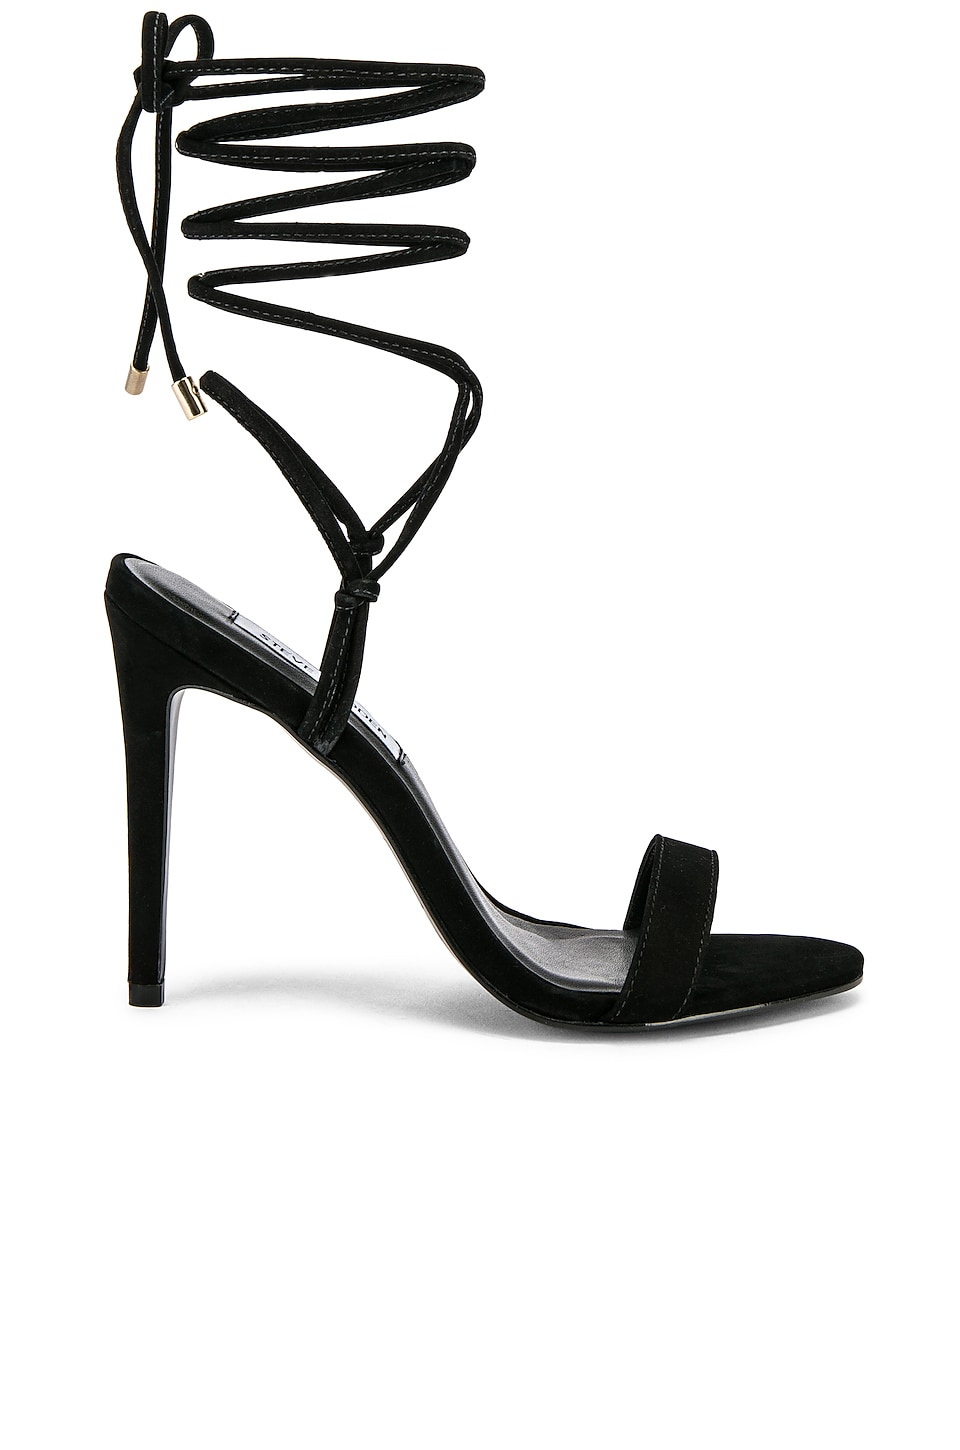 Steve Madden Level Sandal in Black